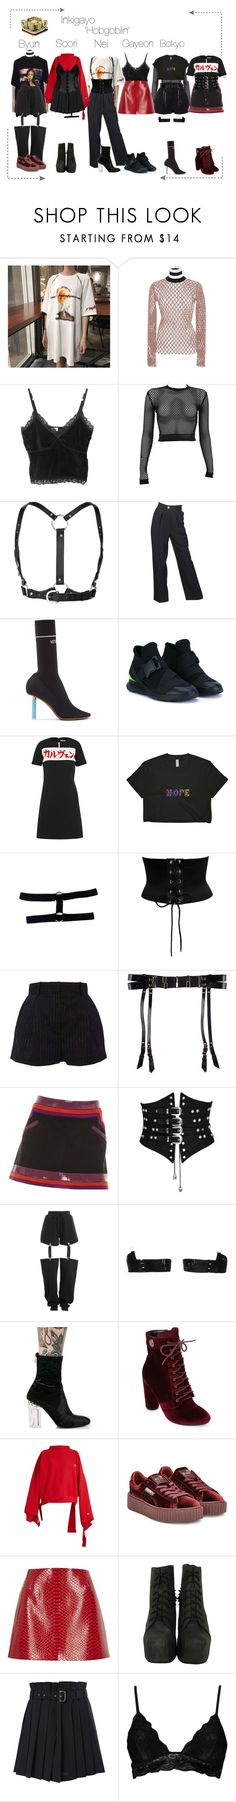 """""""Lunar (루나) 'Hobgoblin' Inkigayo (7th Win)"""" by lunar-official ❤ liked on Polyvore featuring Alexander Wang, PAM, Zana Bayne, Chanel, Vetements, Christopher Kane, Carven, Versace, Bordelle and Puma"""